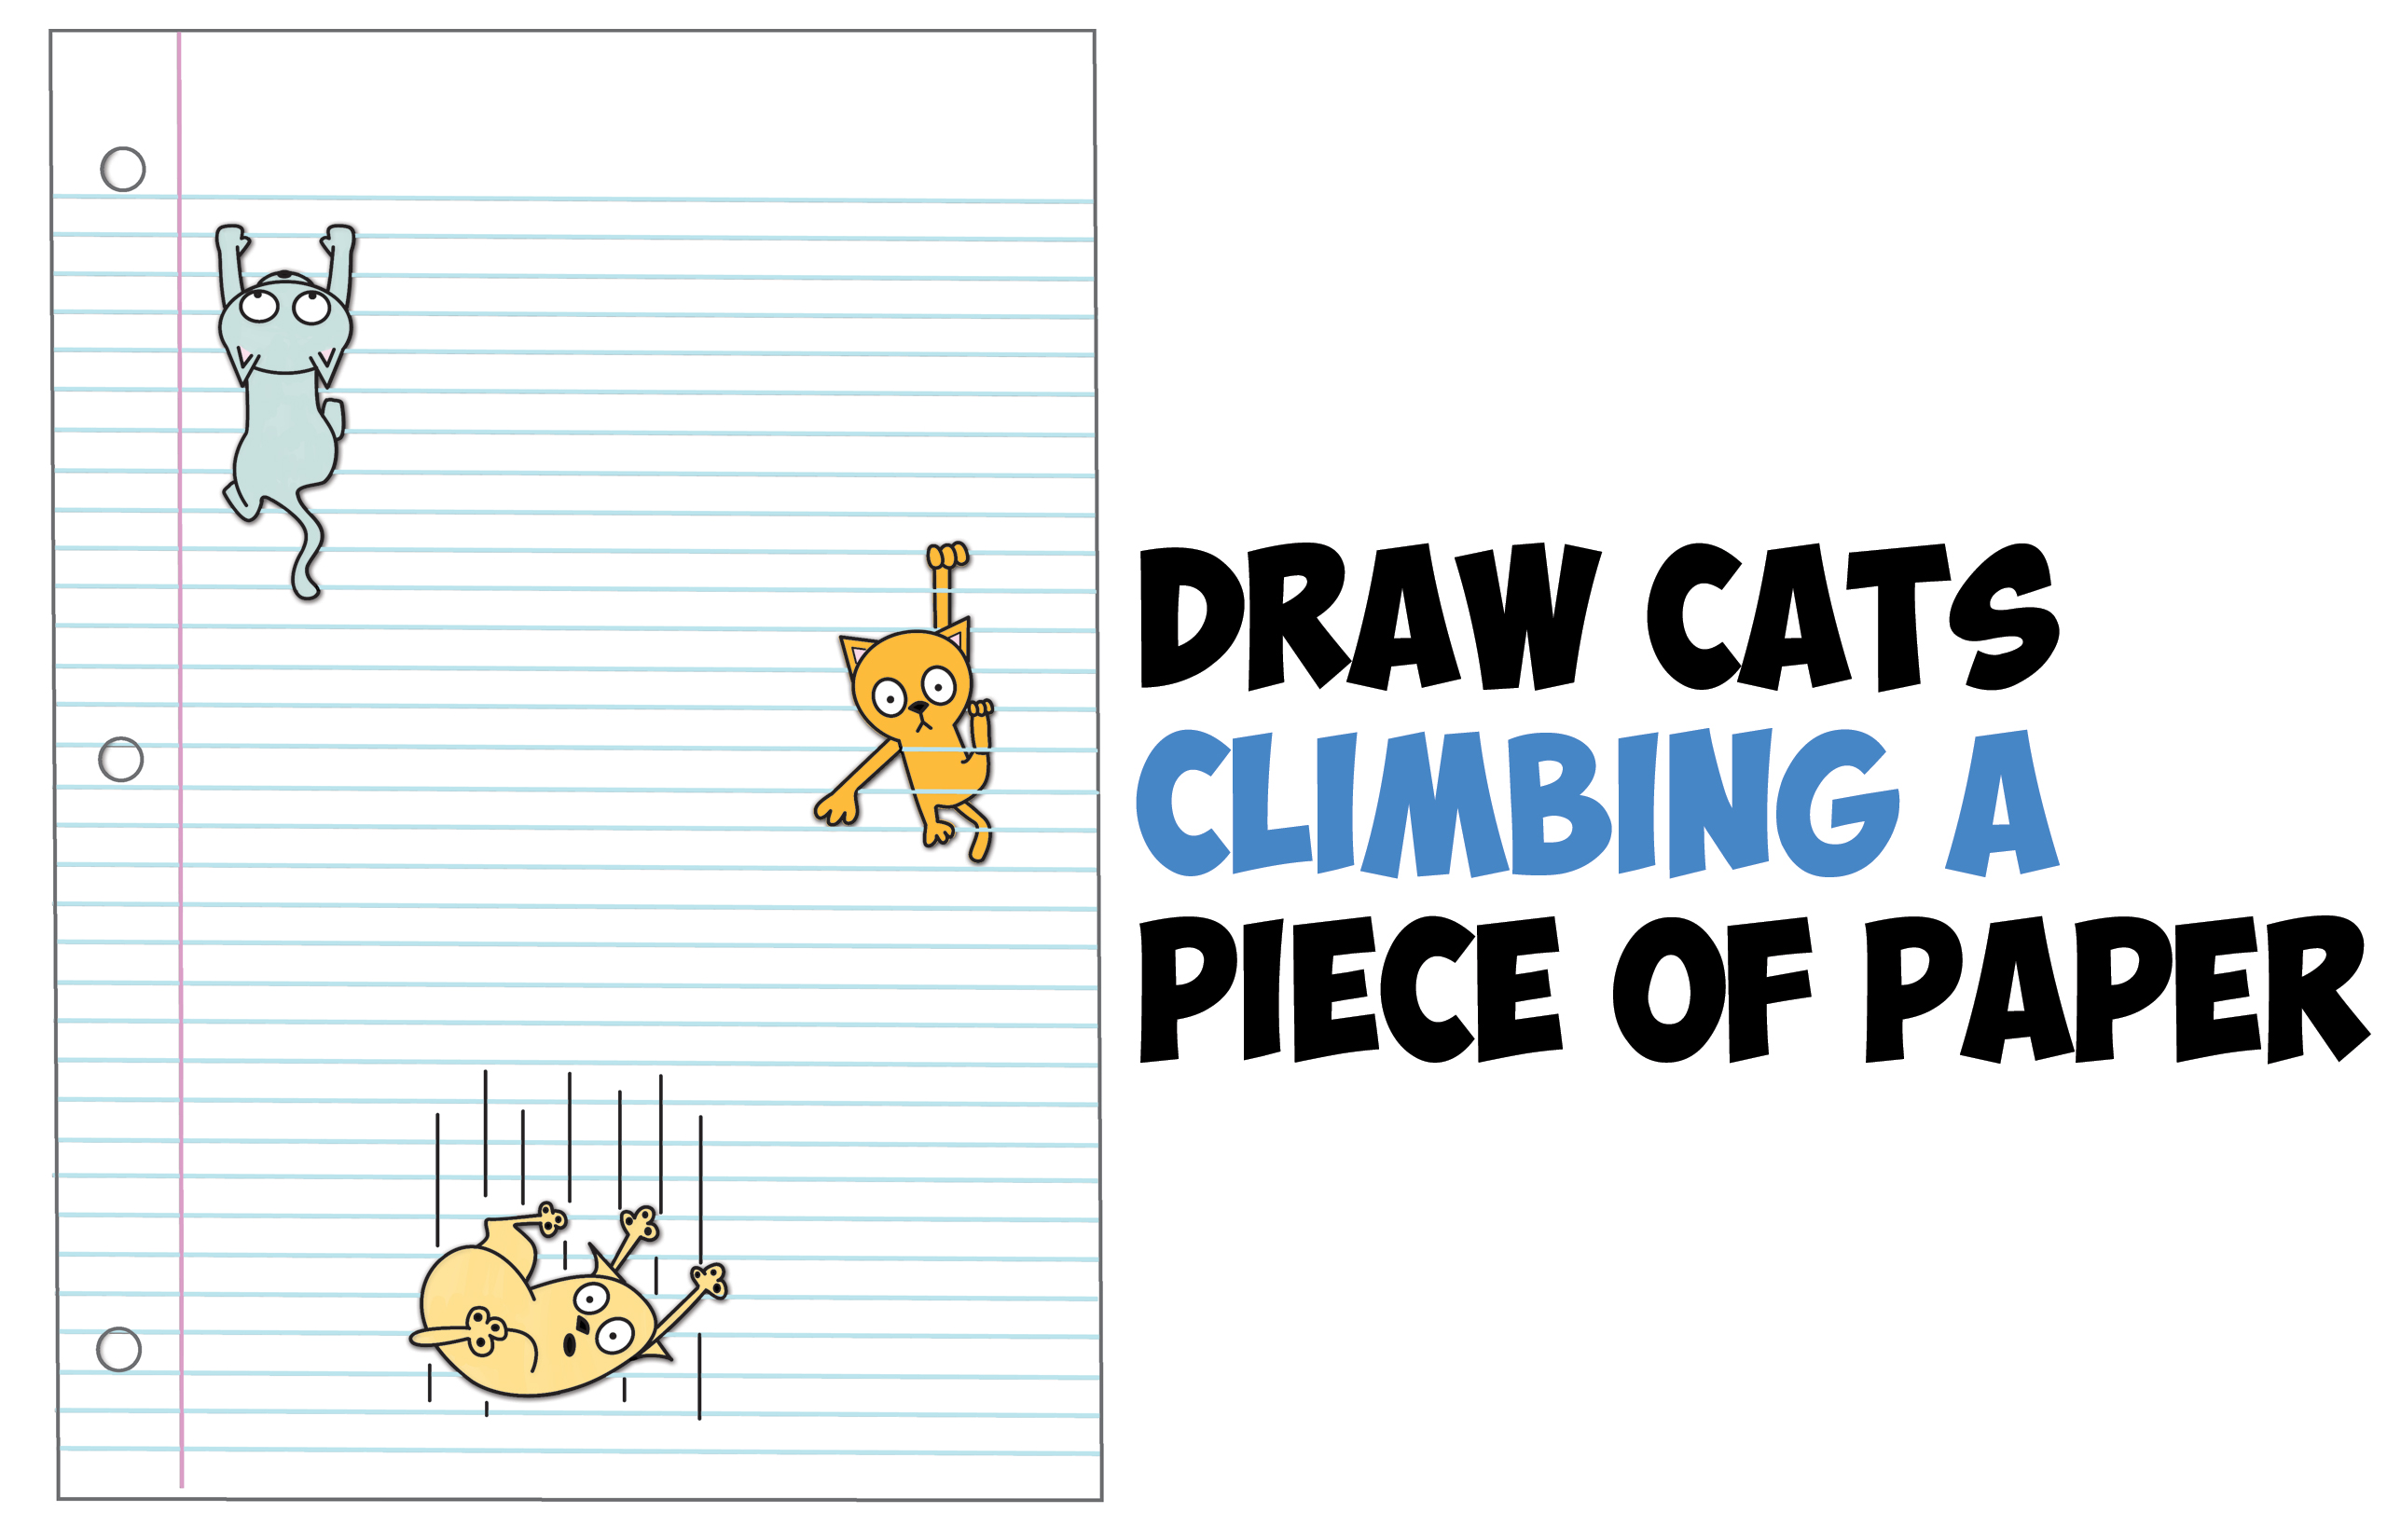 How To Draw Cartoon Cats Climbing Lined Paper 3D Optical Illusion Step By  Step Drawing Tutorial For Kids   How To Draw Step By Step Drawing Tutorials  Lined Paper With Drawing Box